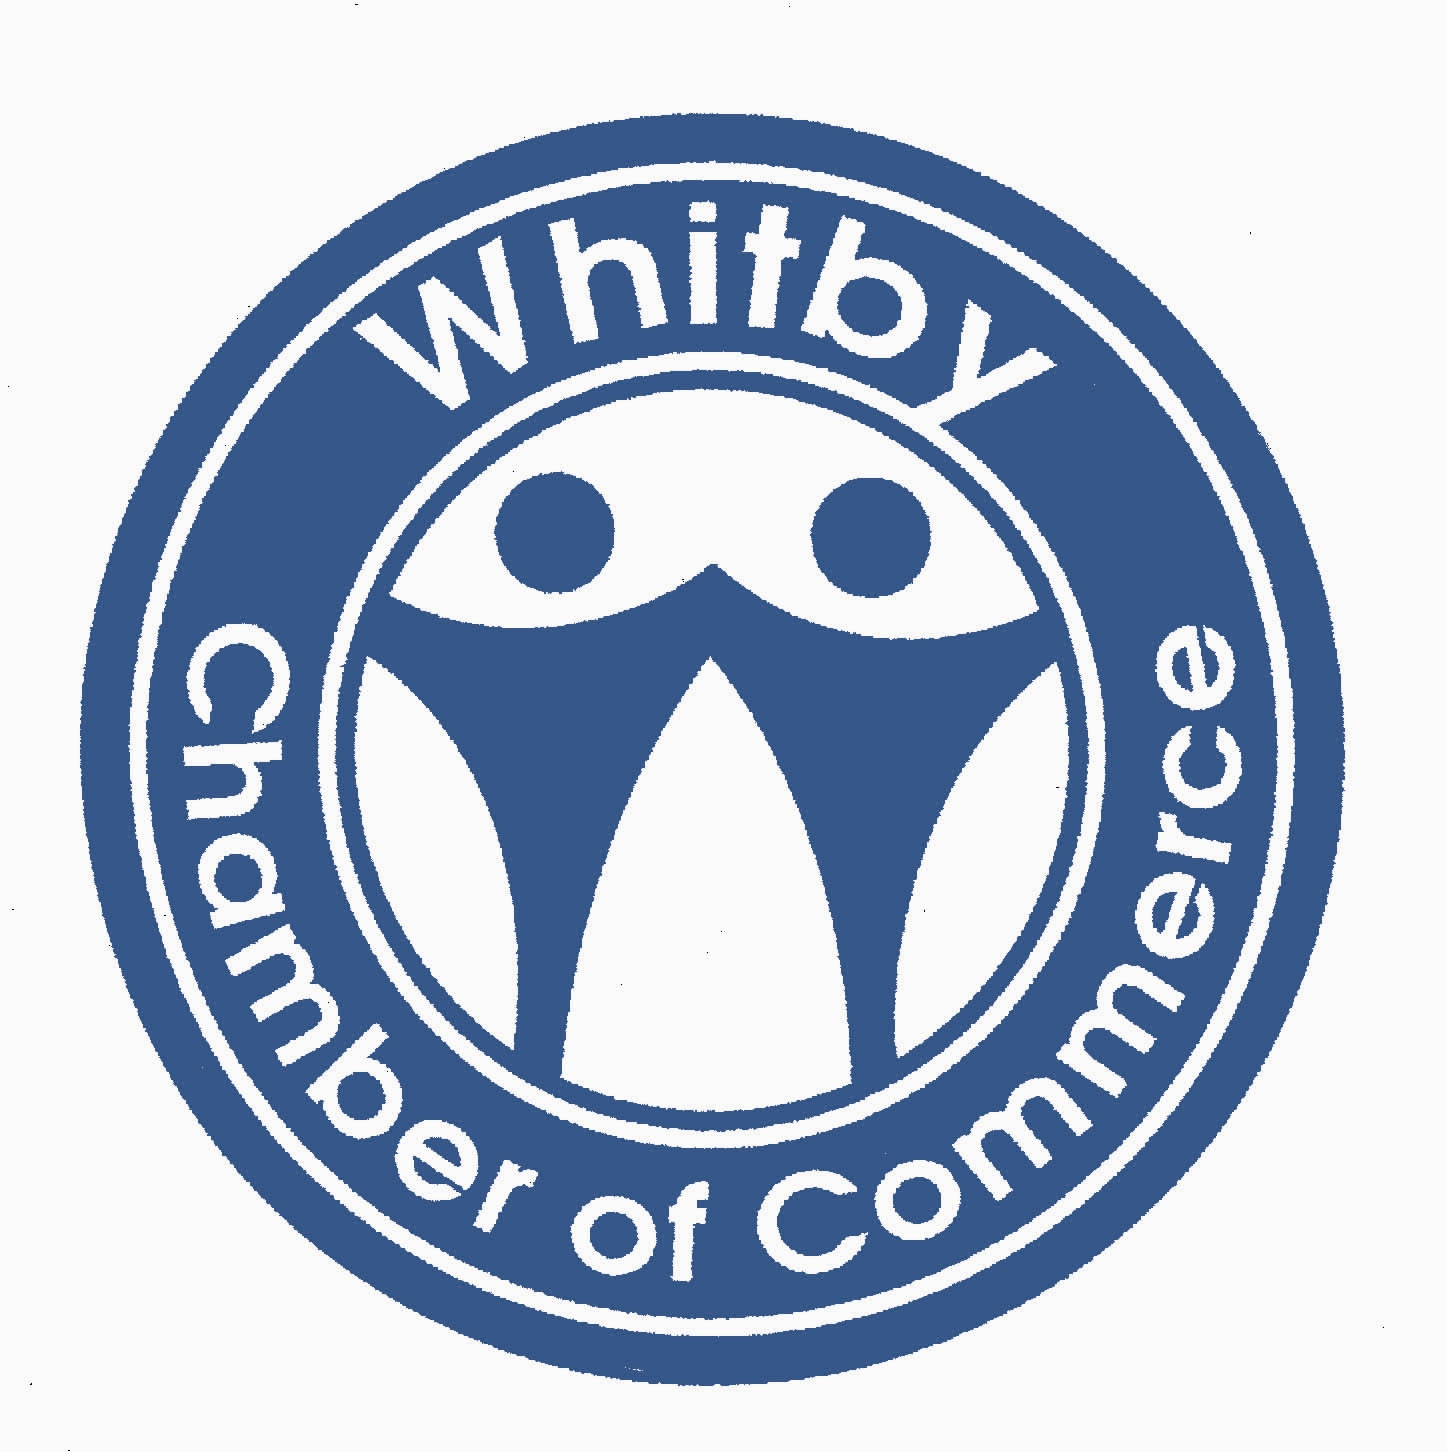 Whitby Chamber of Commerce company logo